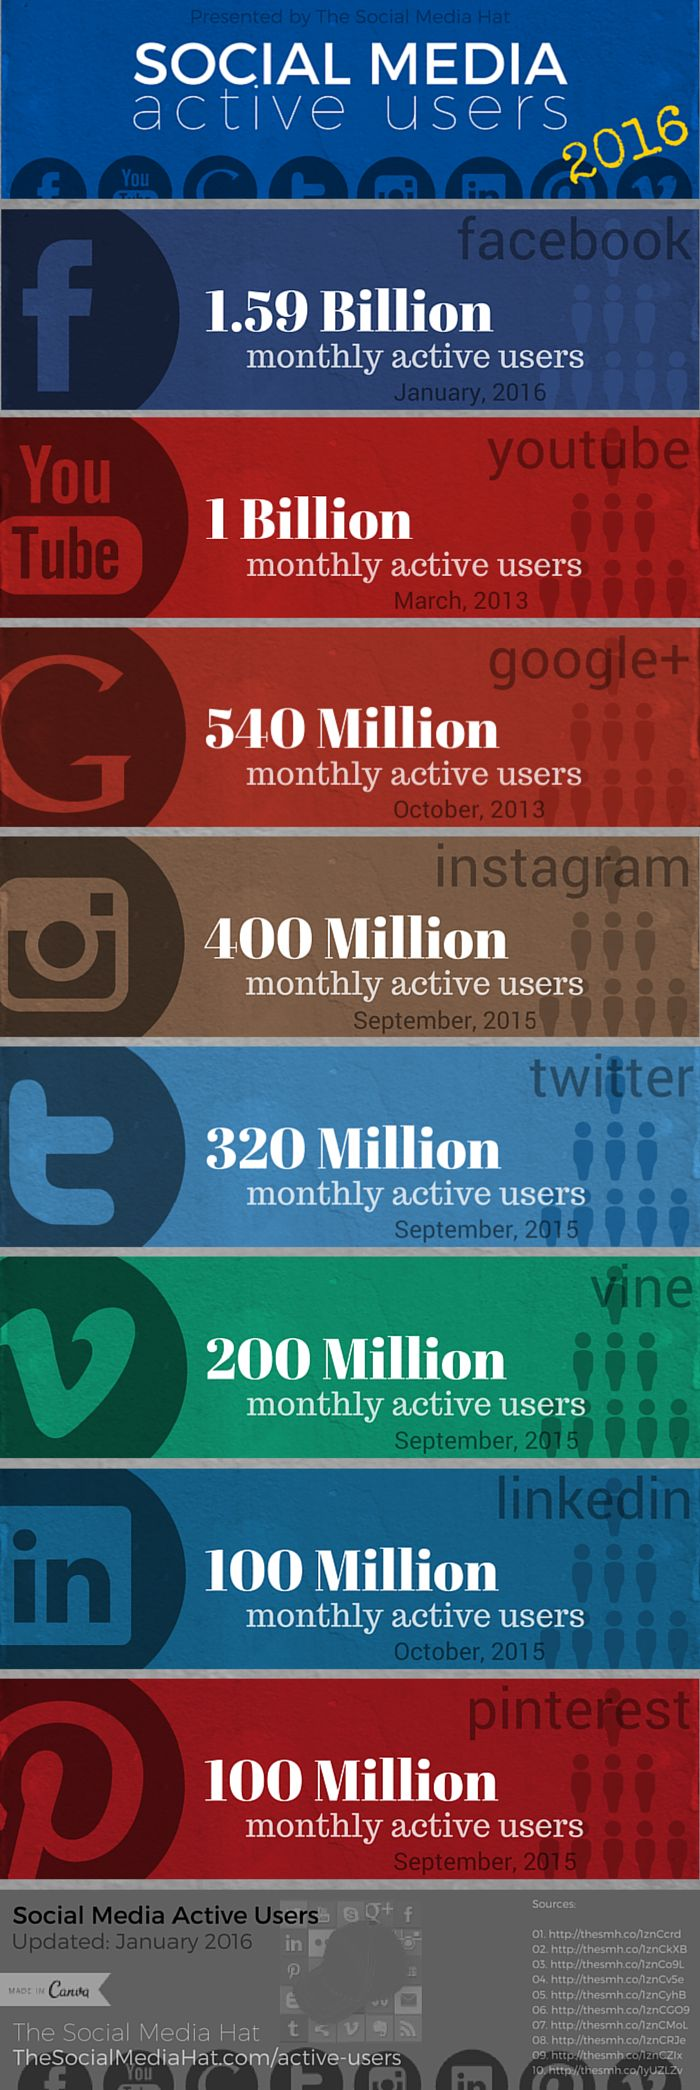 Facebook now reports 1.59 Billion users who are active every month. See how that compares to the other major networks! | http://www.thesocialmediahat.com/active-users